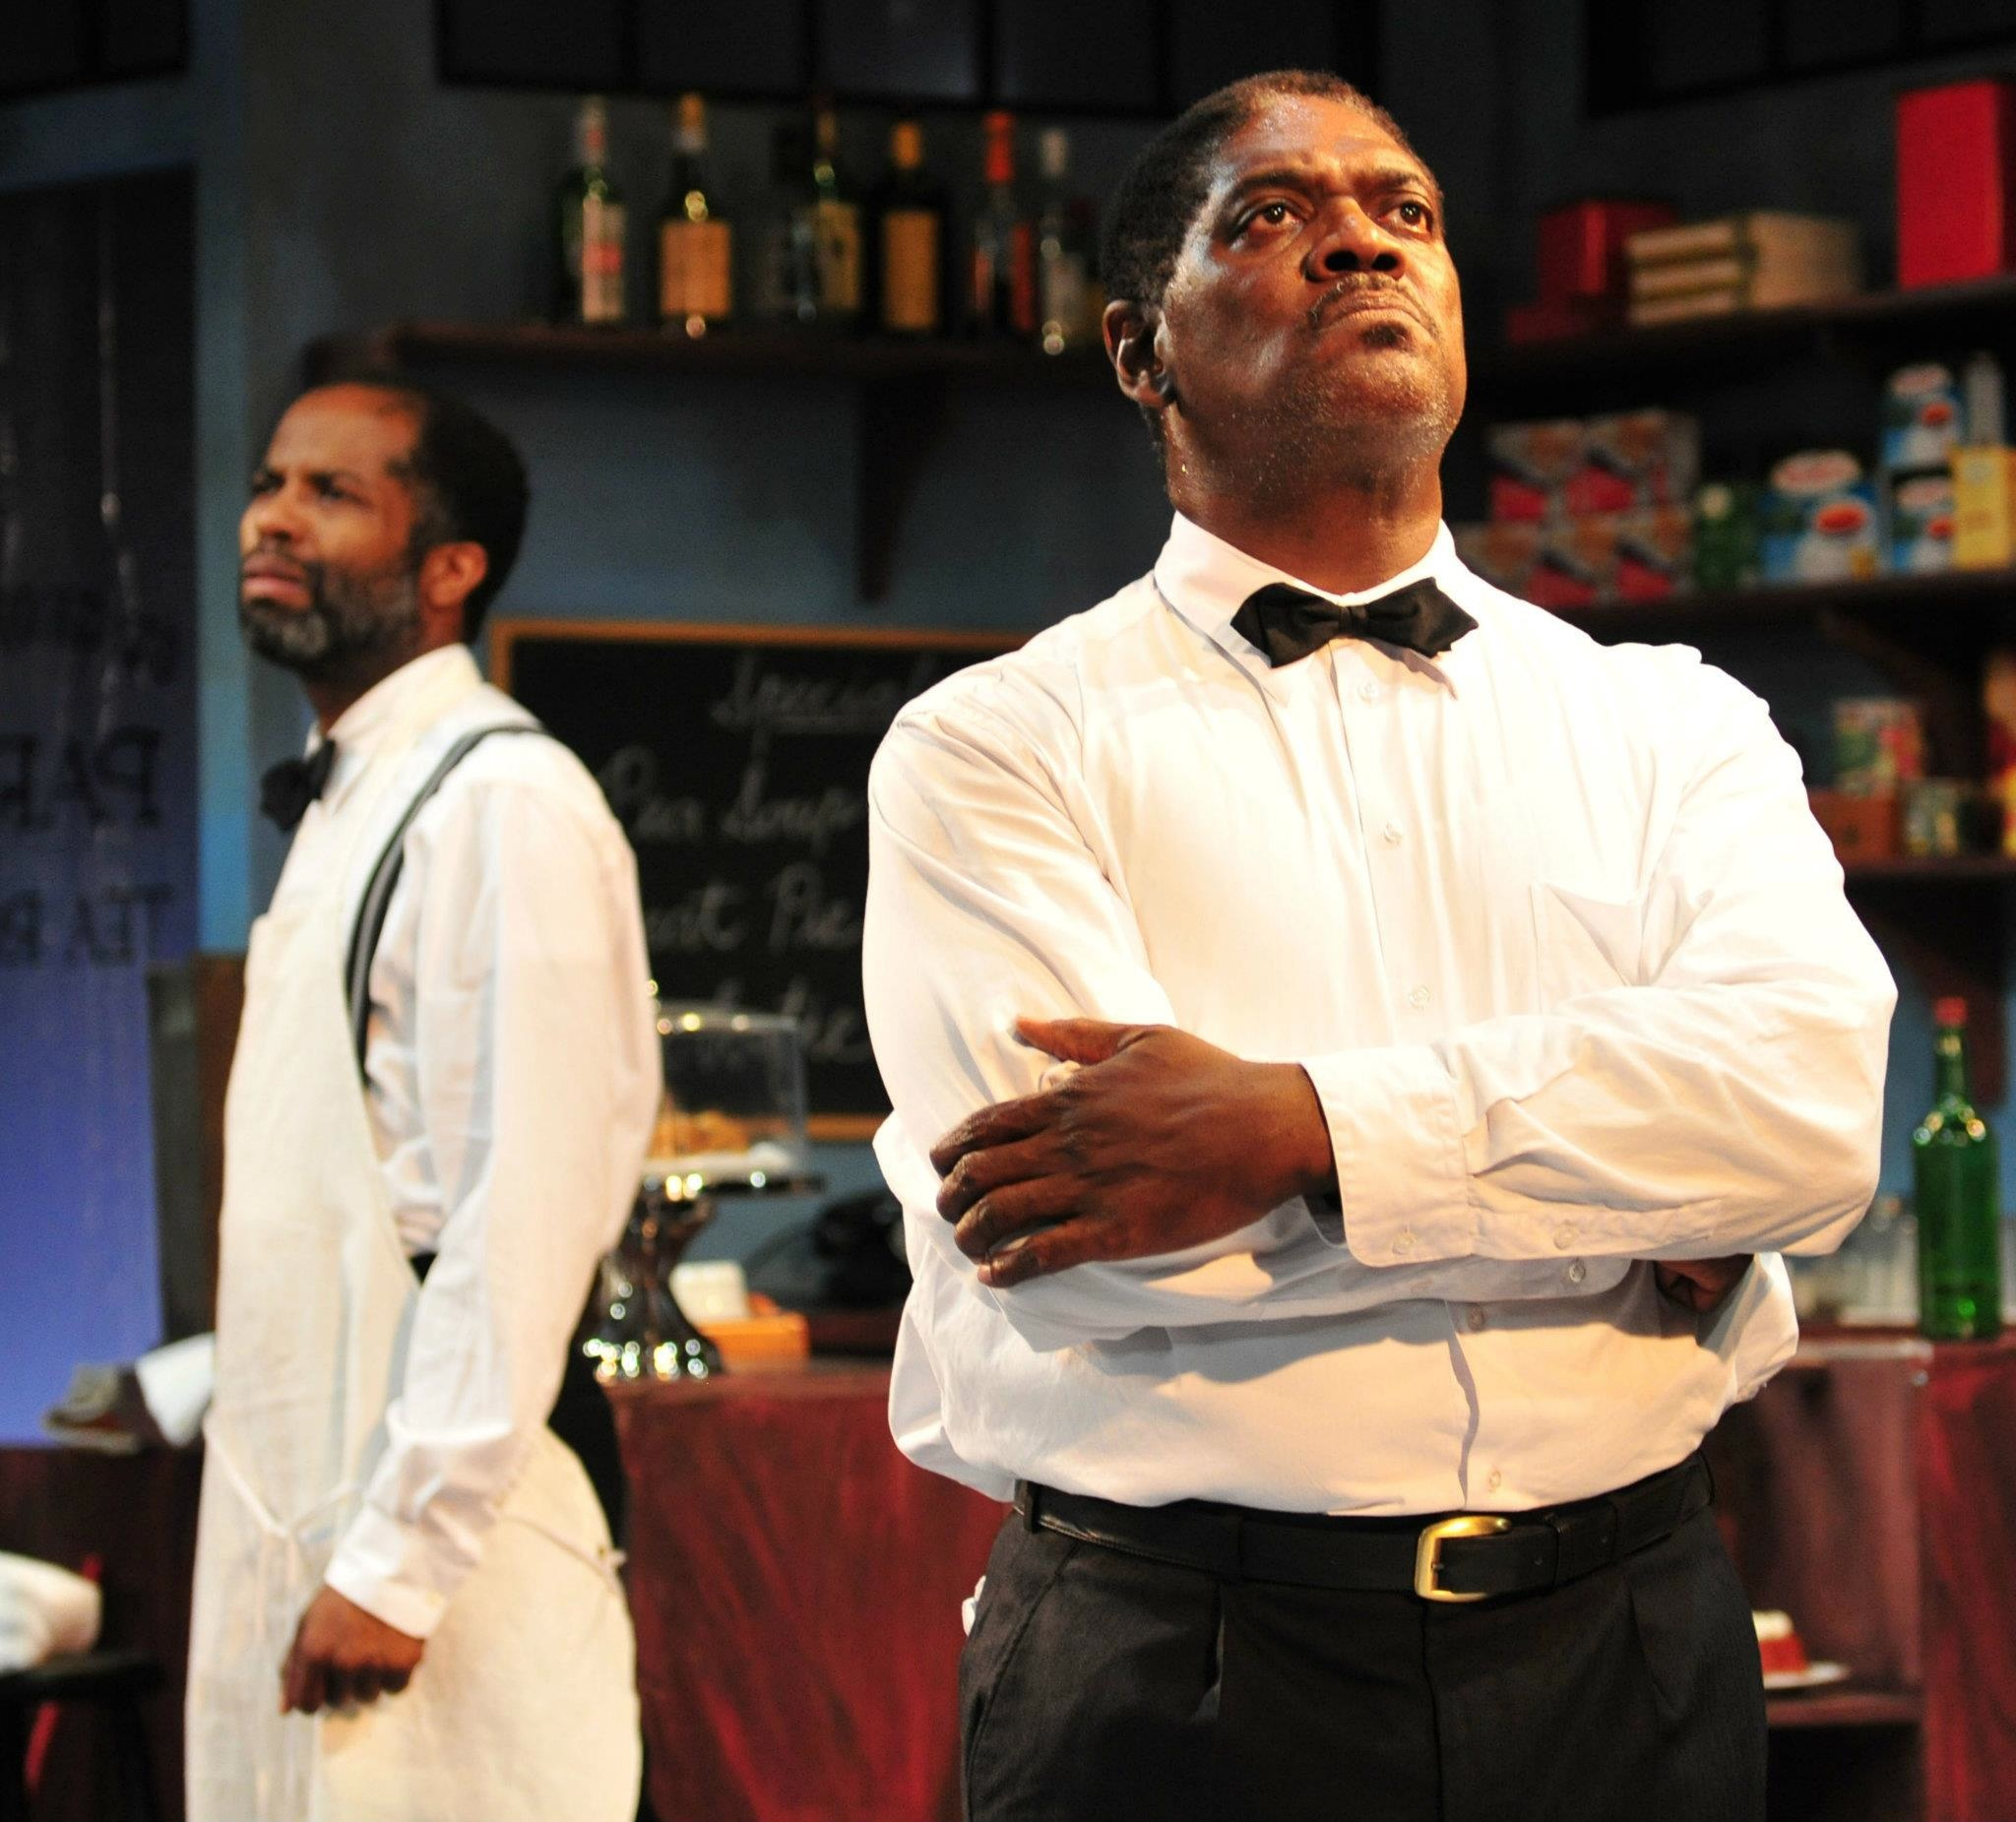 master harold and the boys gloucester stage company wounded and wondering if forgiveness and progress is possible as willie anthony wills jr considers the events that just passed photo gary ng